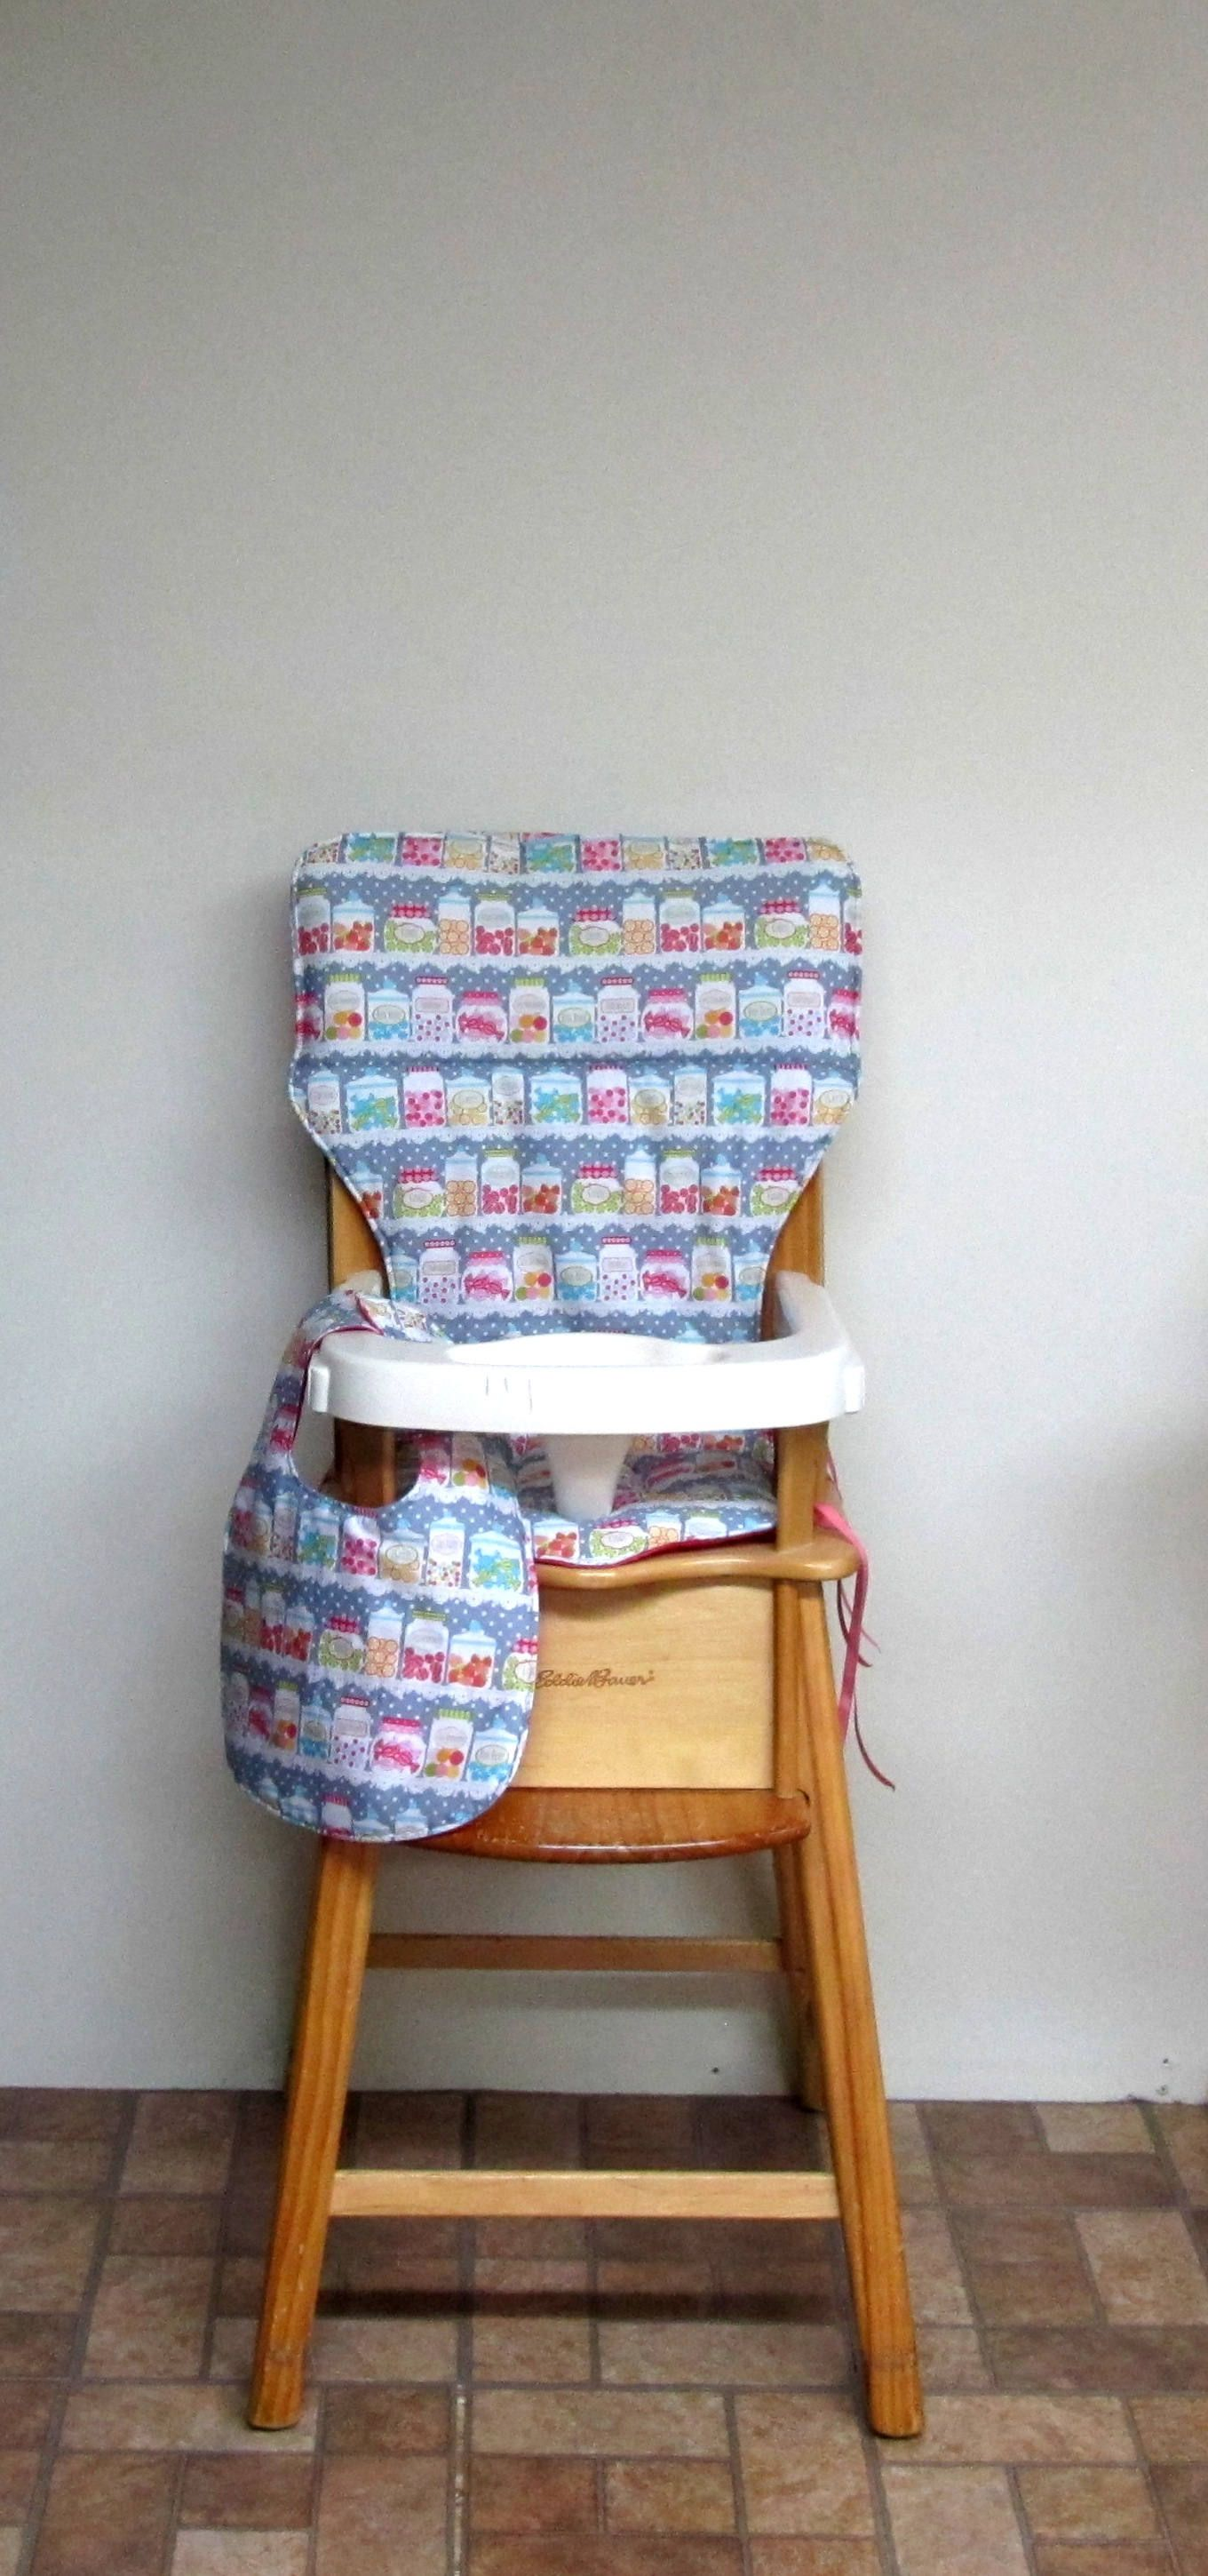 custom eddie bauer wooden high chair pad replacement cover kids